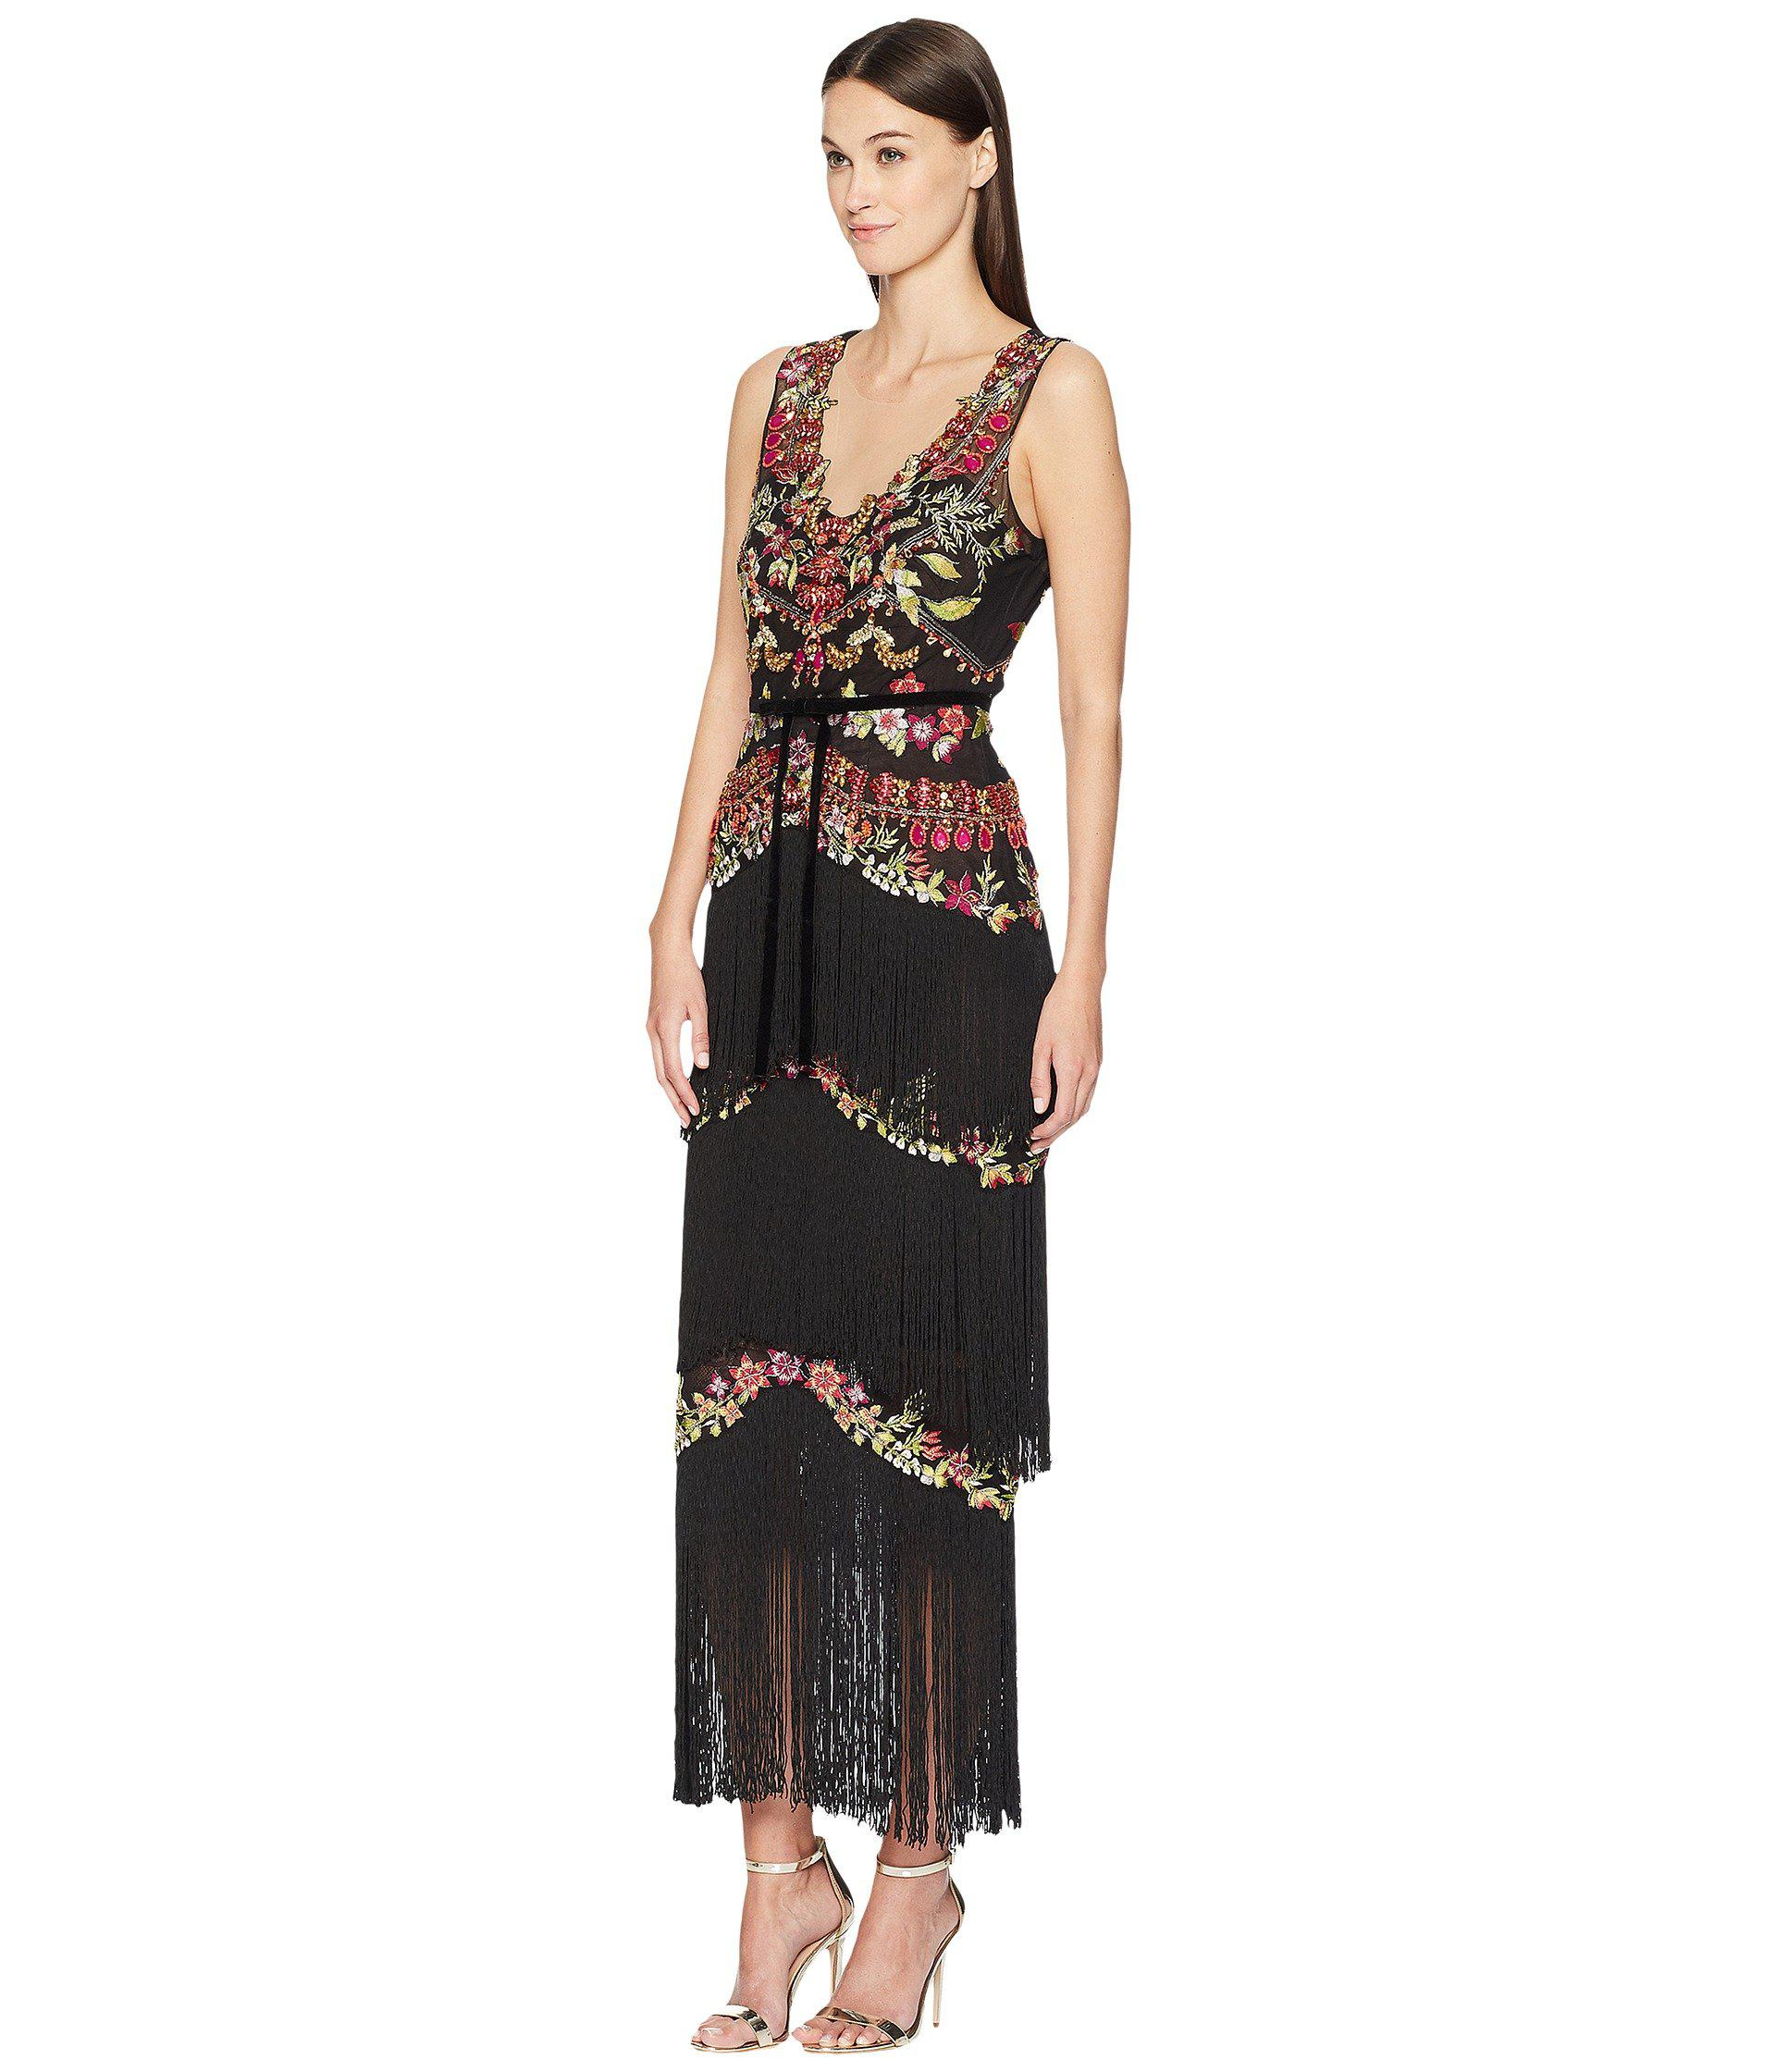 Lyst   Marchesa Notte All Over Beaded Fringe Gown  black  Women s     Lyst   Marchesa Notte All Over Beaded Fringe Gown  black  Women s Dress in  Black